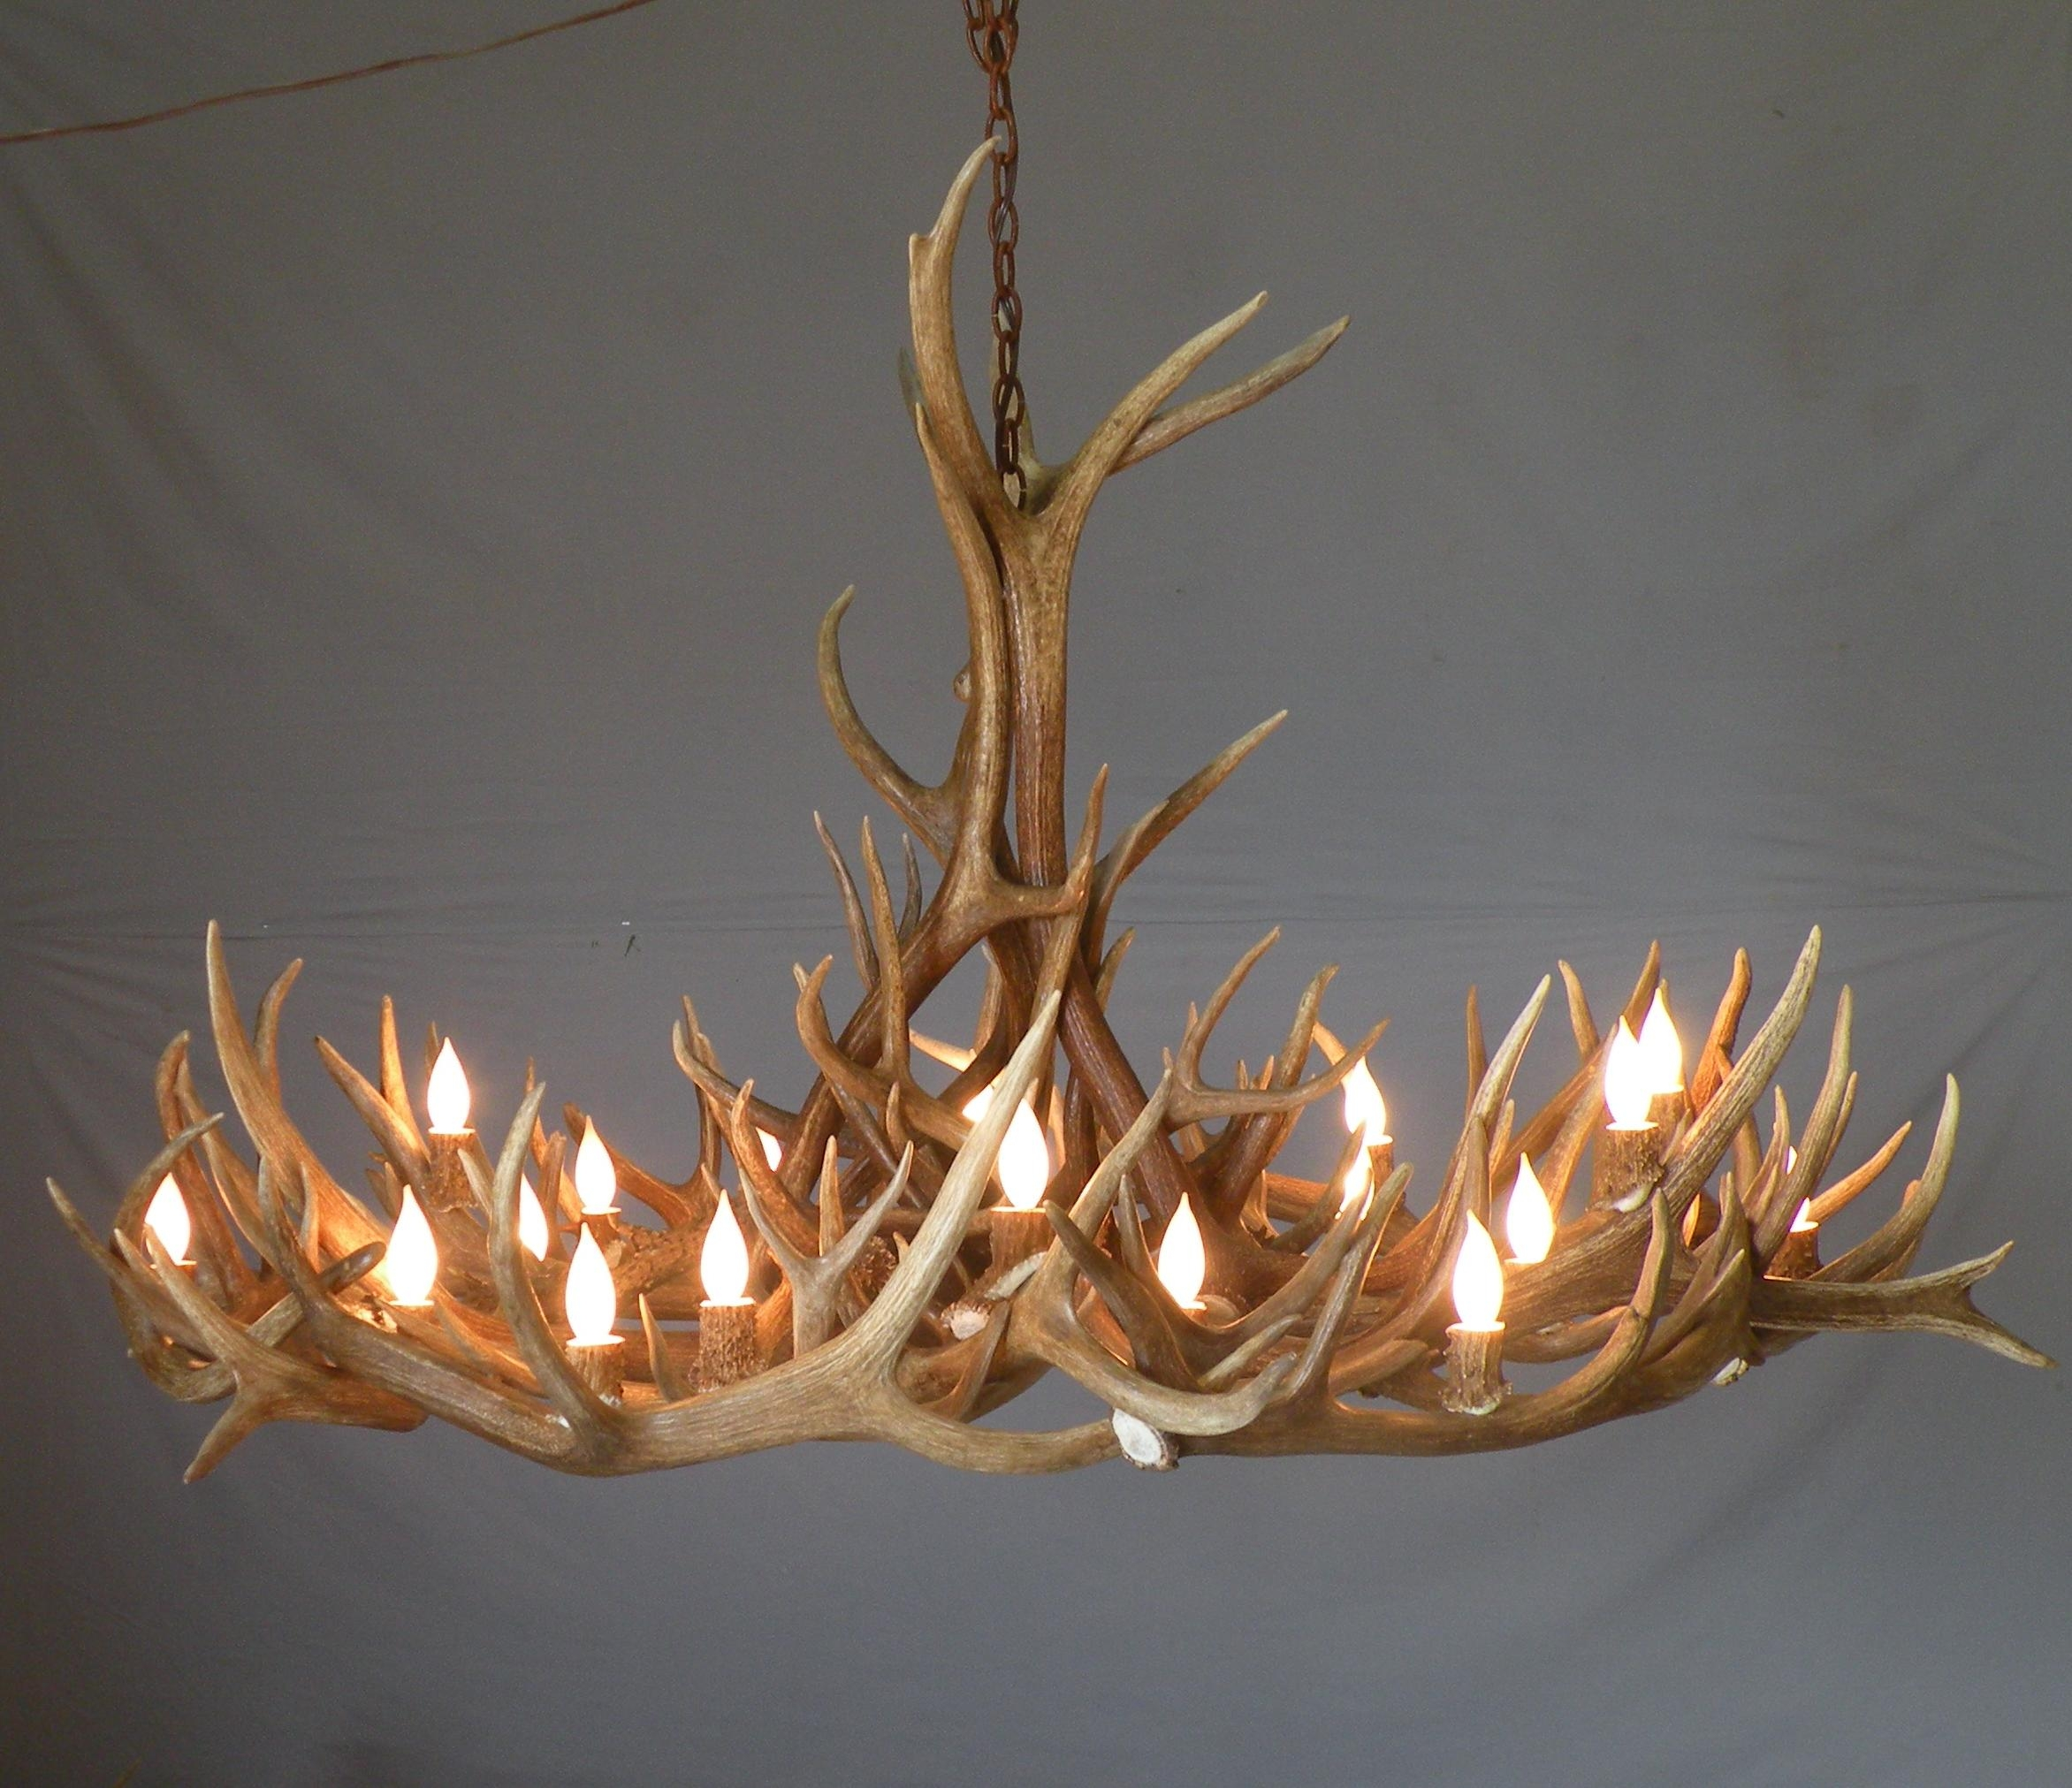 Lamp Deer Horn Chandelier With Authentic Look For Your Lighting Within Large Antler Chandelier (#5 of 12)